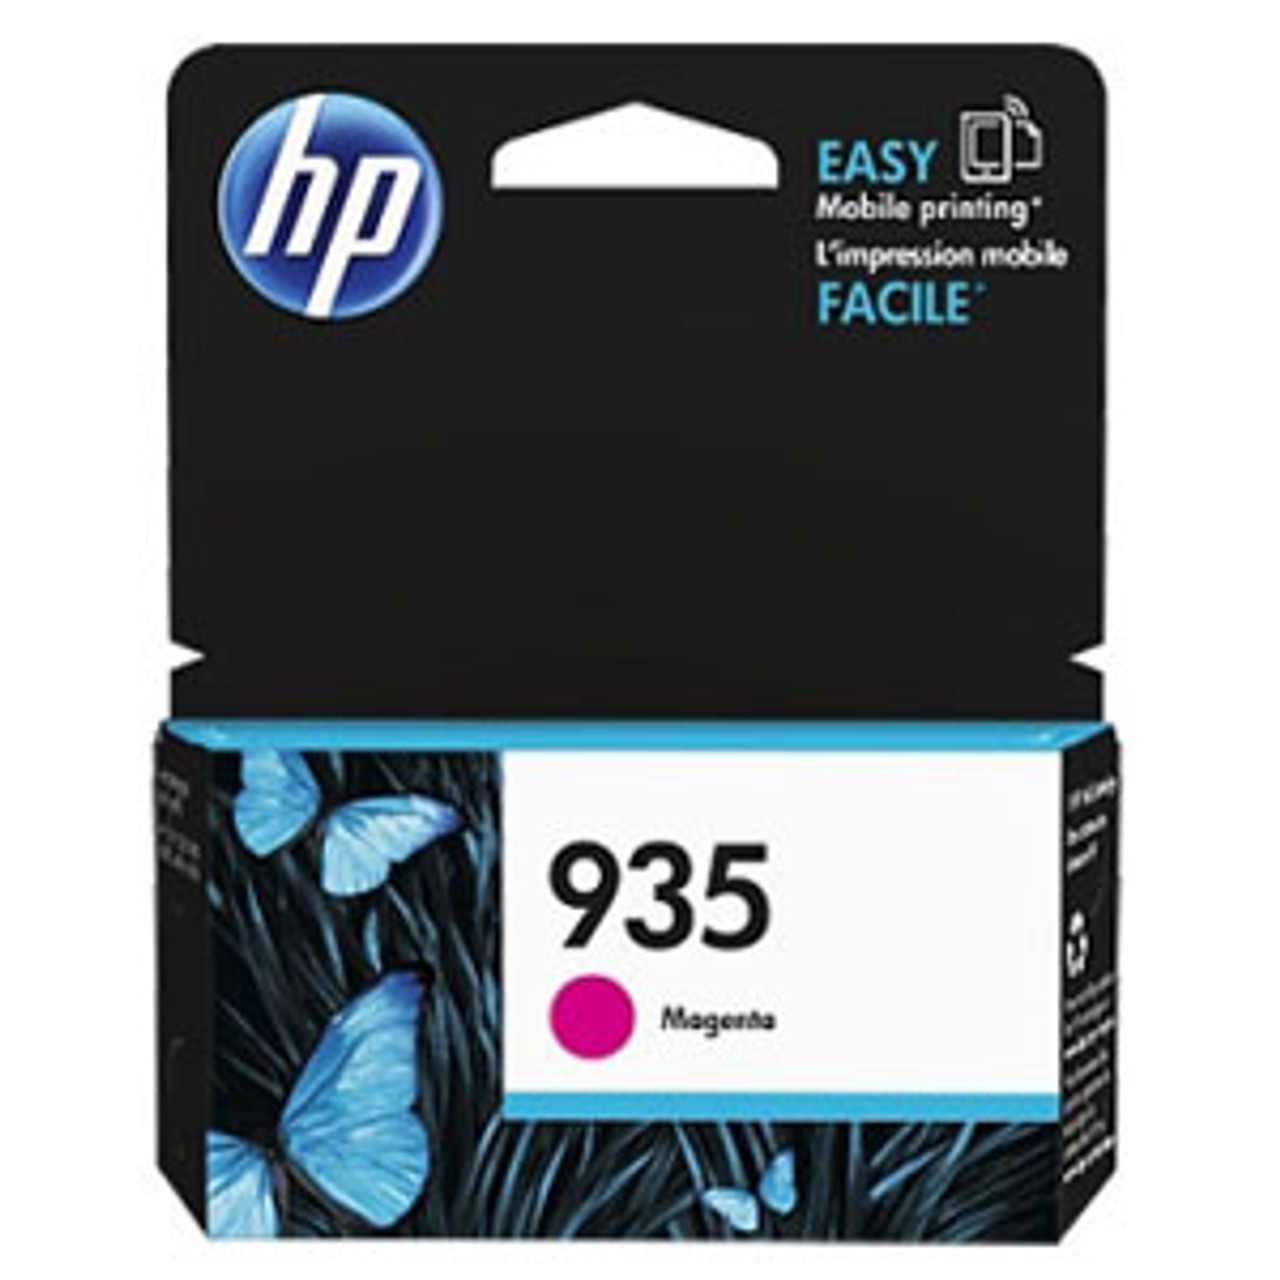 Image for HP #935 Magenta Ink Cartridge C2P21AA 400 pages CX Computer Superstore